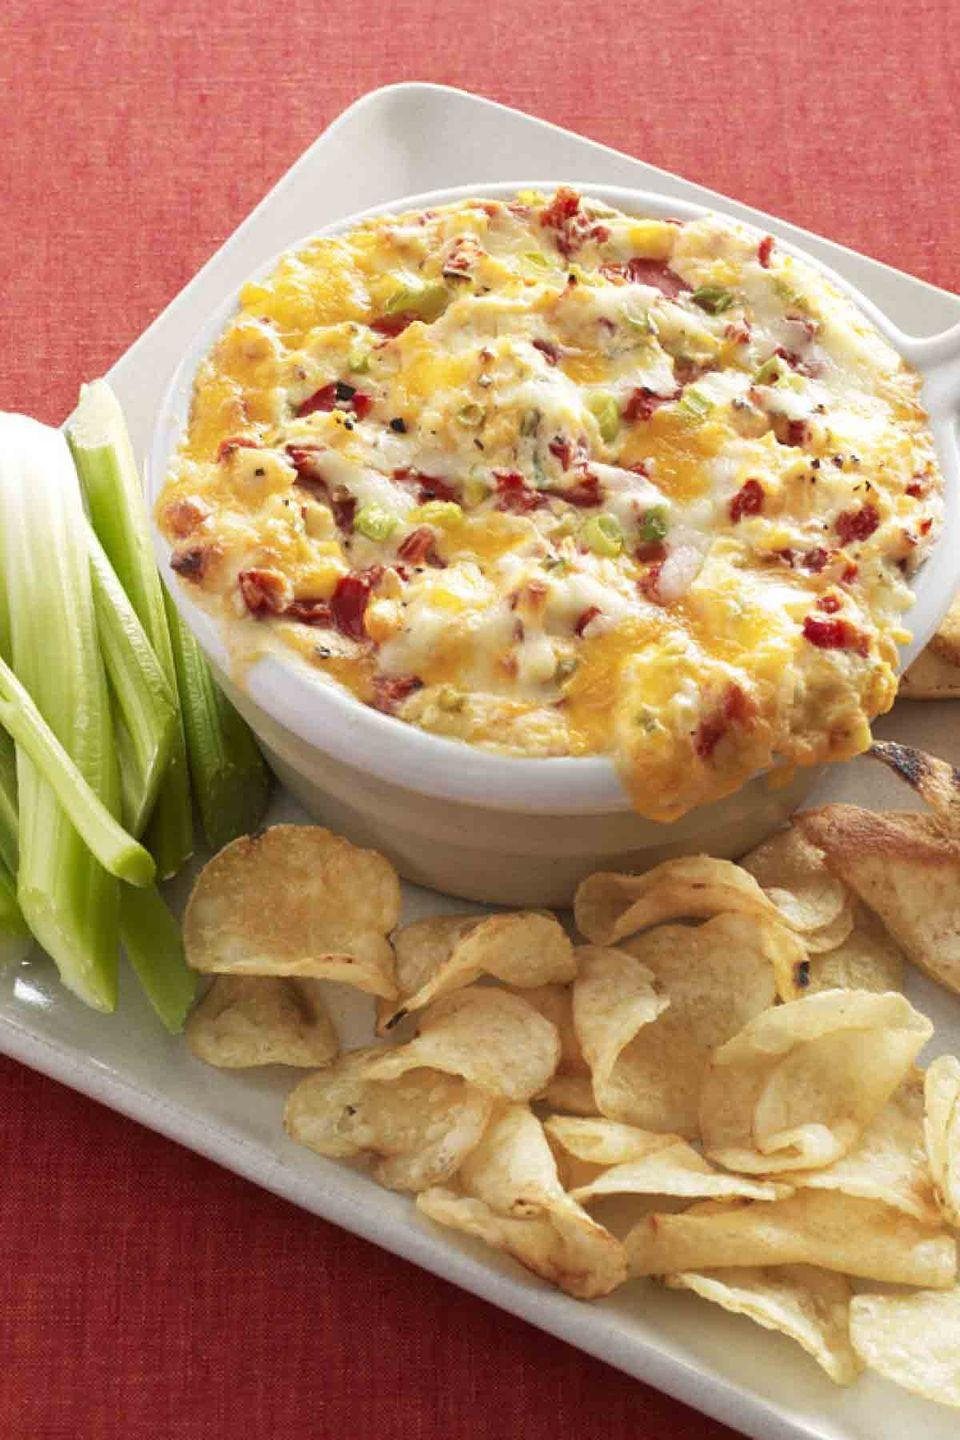 "<p>Prepare this classic Southern dip and your guests will enjoy every warm, cheesy bite. </p><p><strong><a href=""https://www.countryliving.com/food-drinks/recipes/a33699/warm-pimiento-cheese-dip-recipe-wdy1112/"" rel=""nofollow noopener"" target=""_blank"" data-ylk=""slk:Get the recipe"" class=""link rapid-noclick-resp"">Get the recipe</a>.</strong></p>"